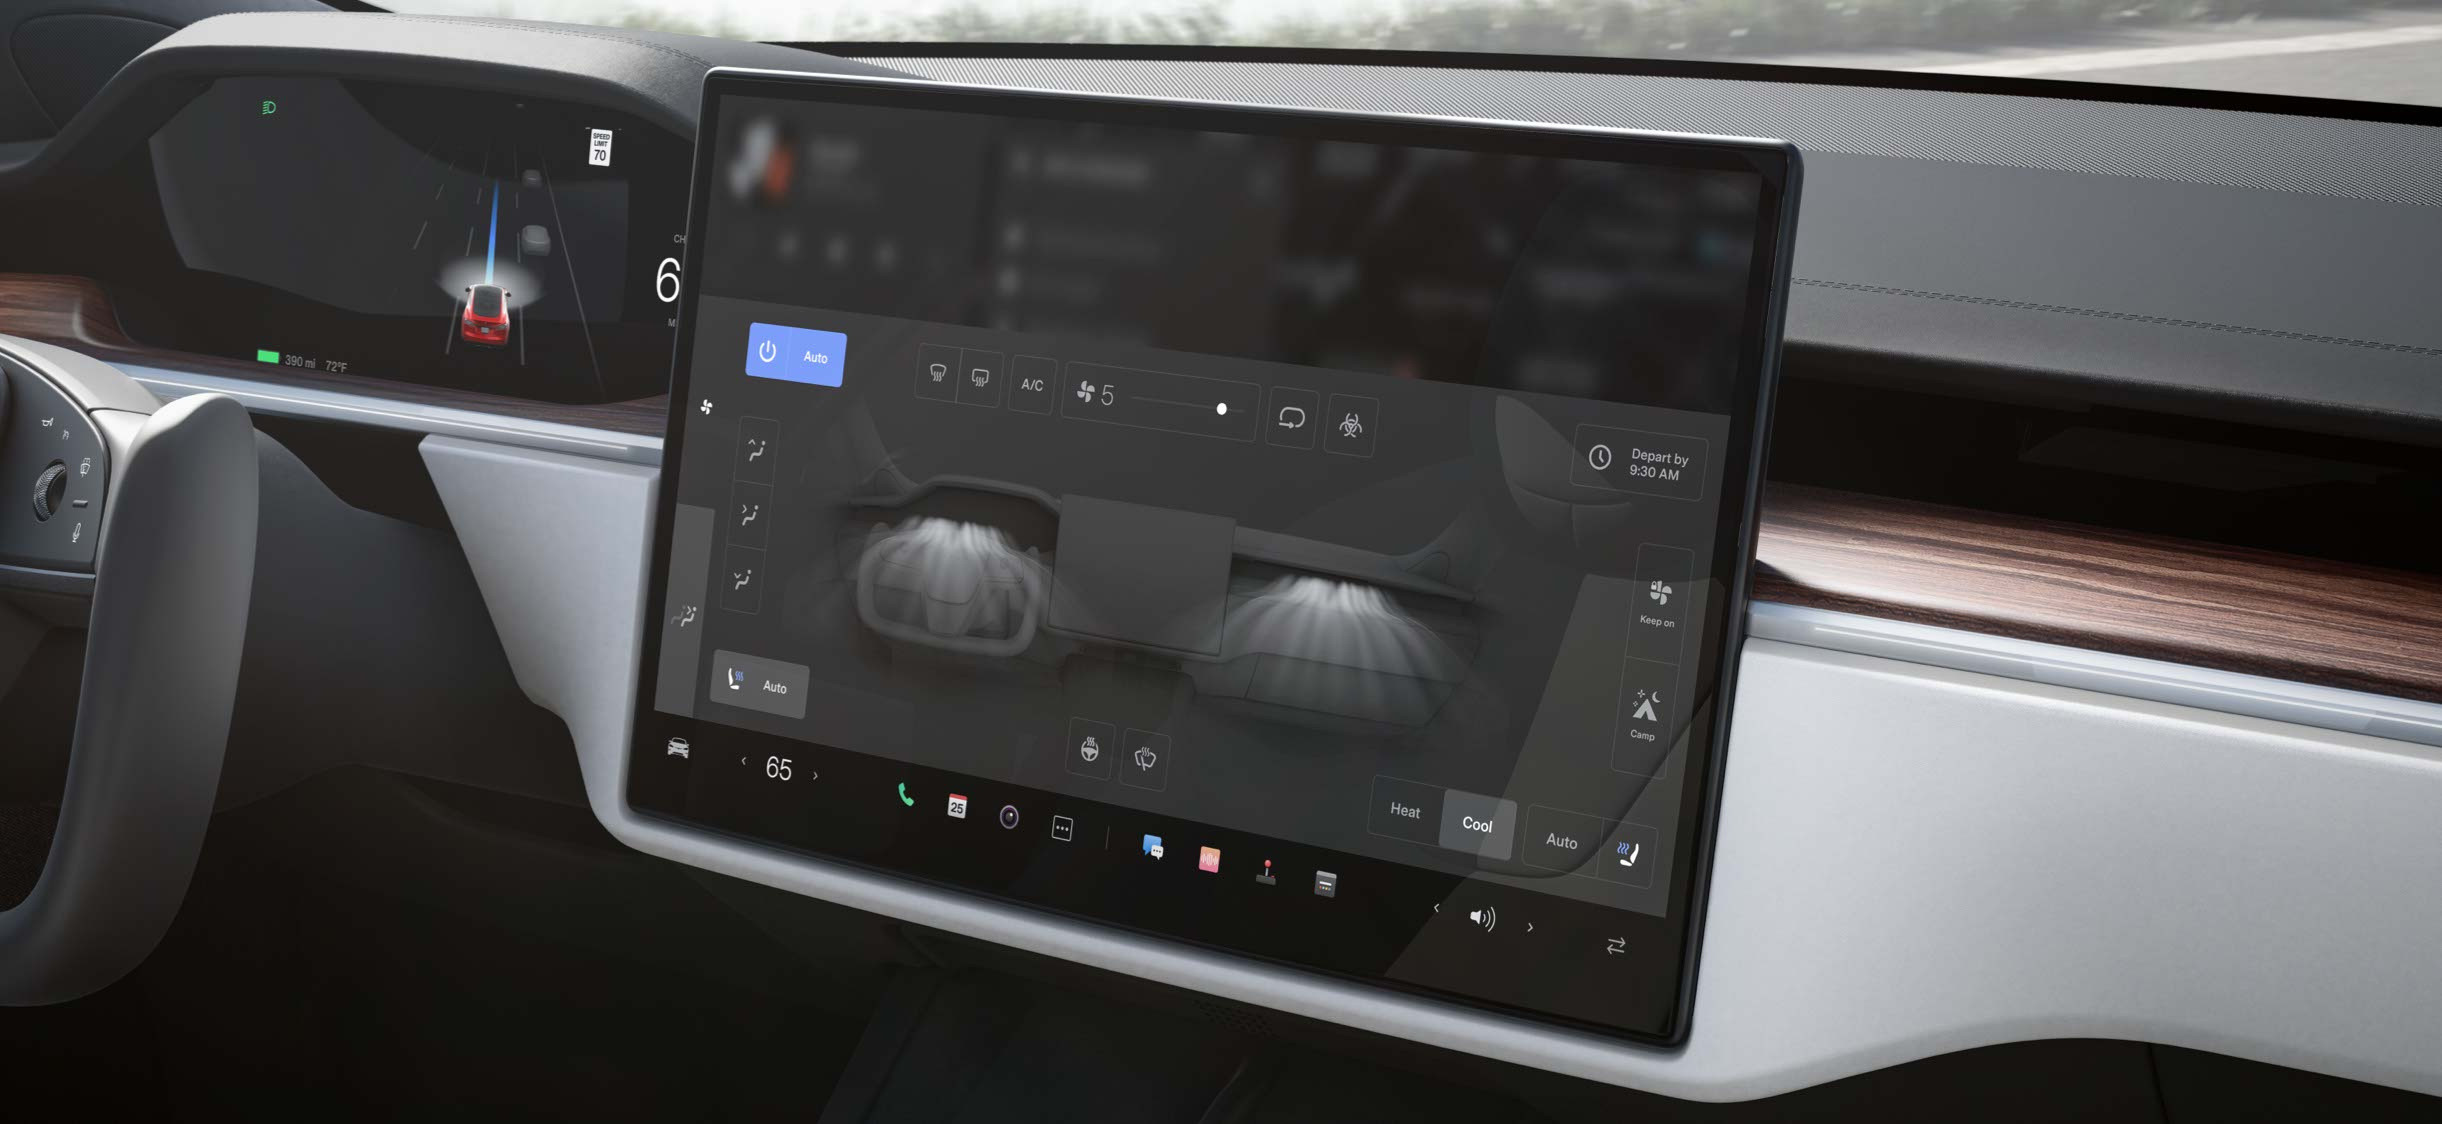 Model S center display with climate control